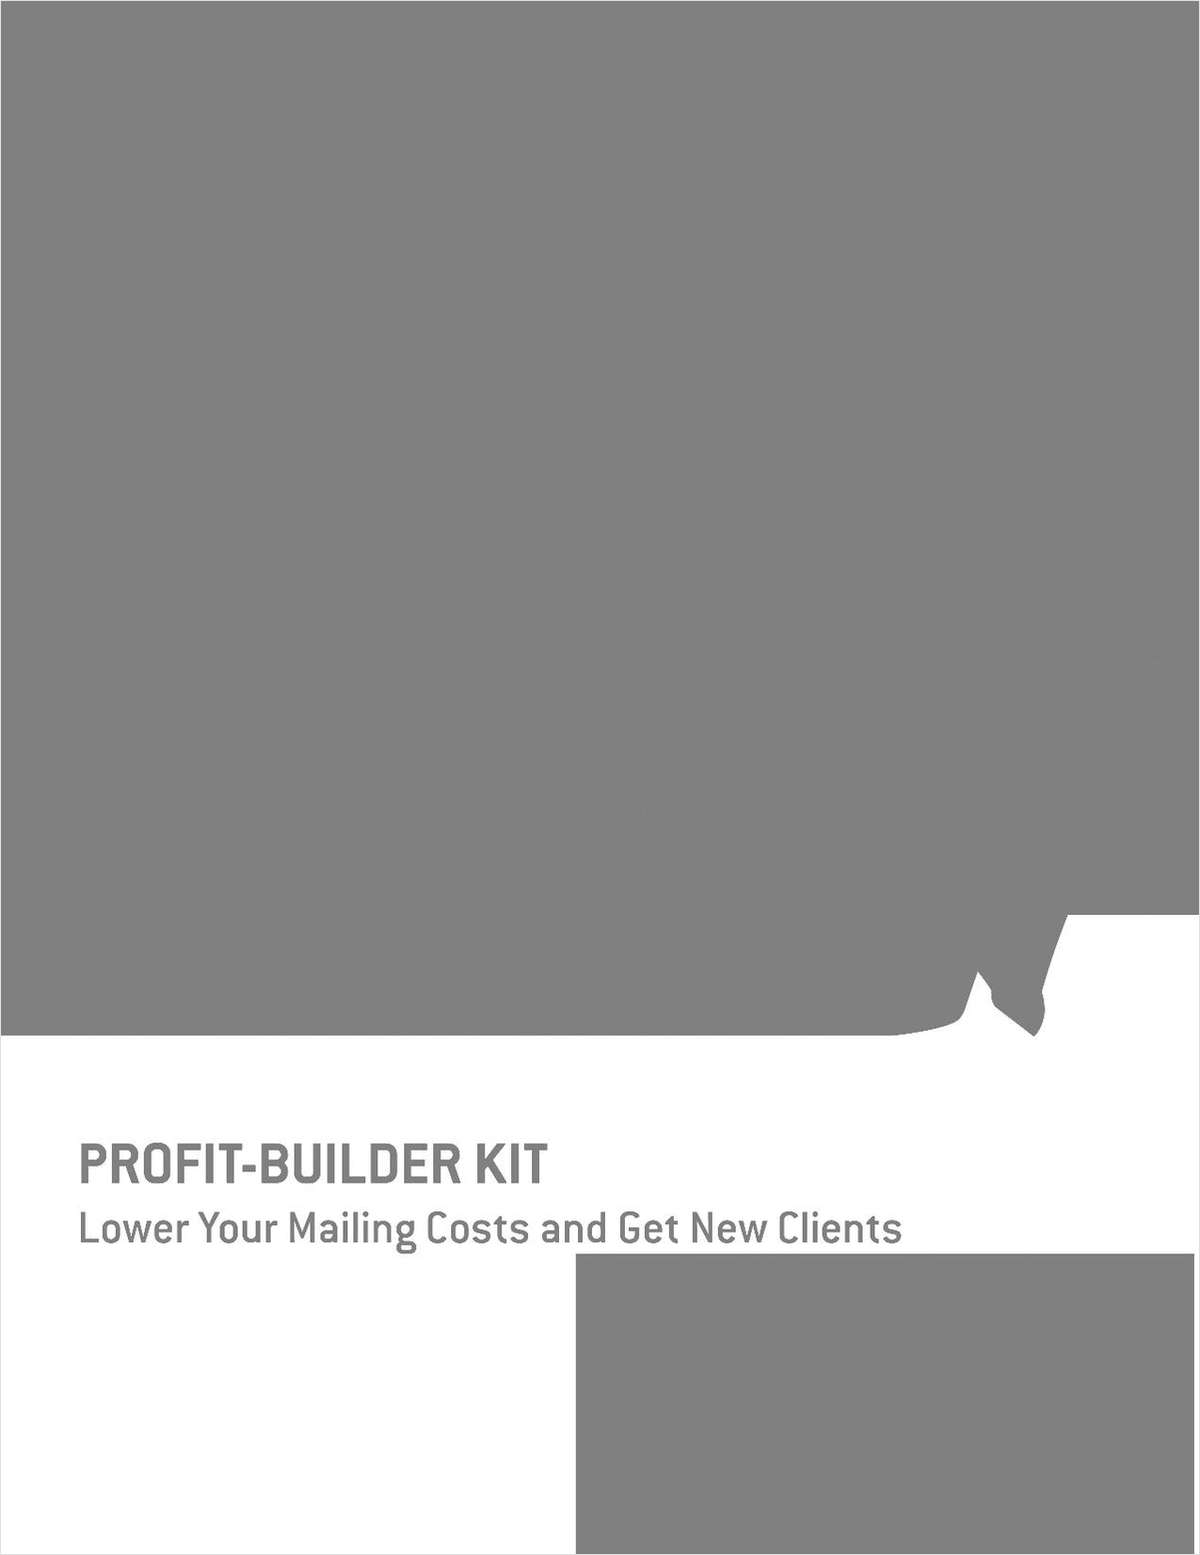 Learn How to Grow Your Profits Using a Postage Meter